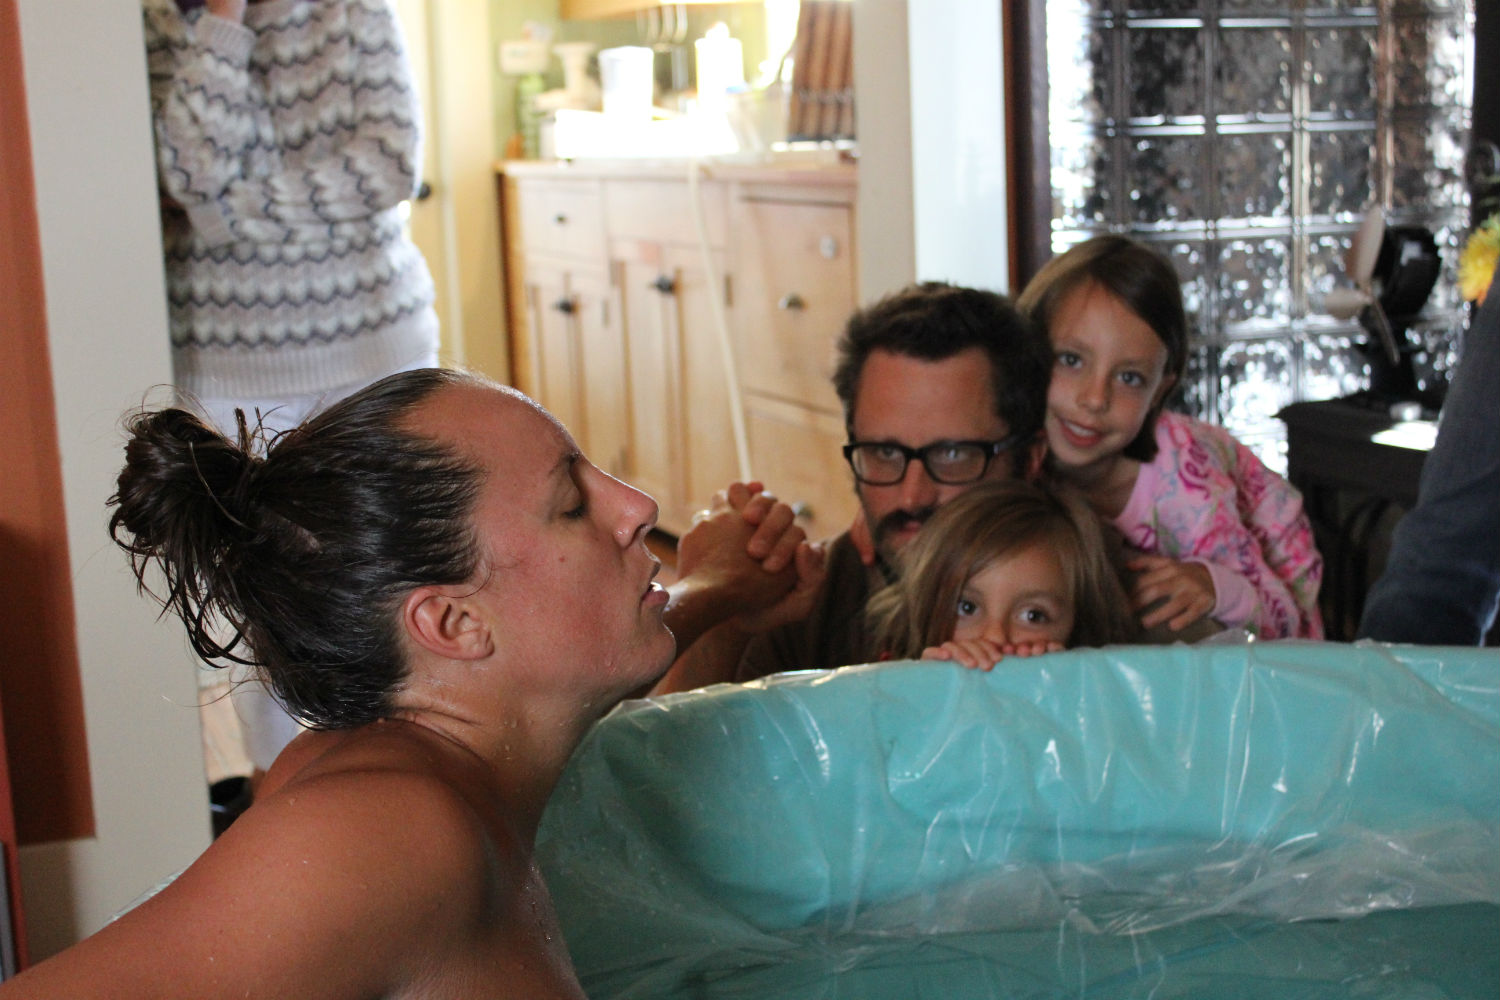 Mother in labor in a birthing tub with daughters and husband kneeling at the side of the tub providing support.